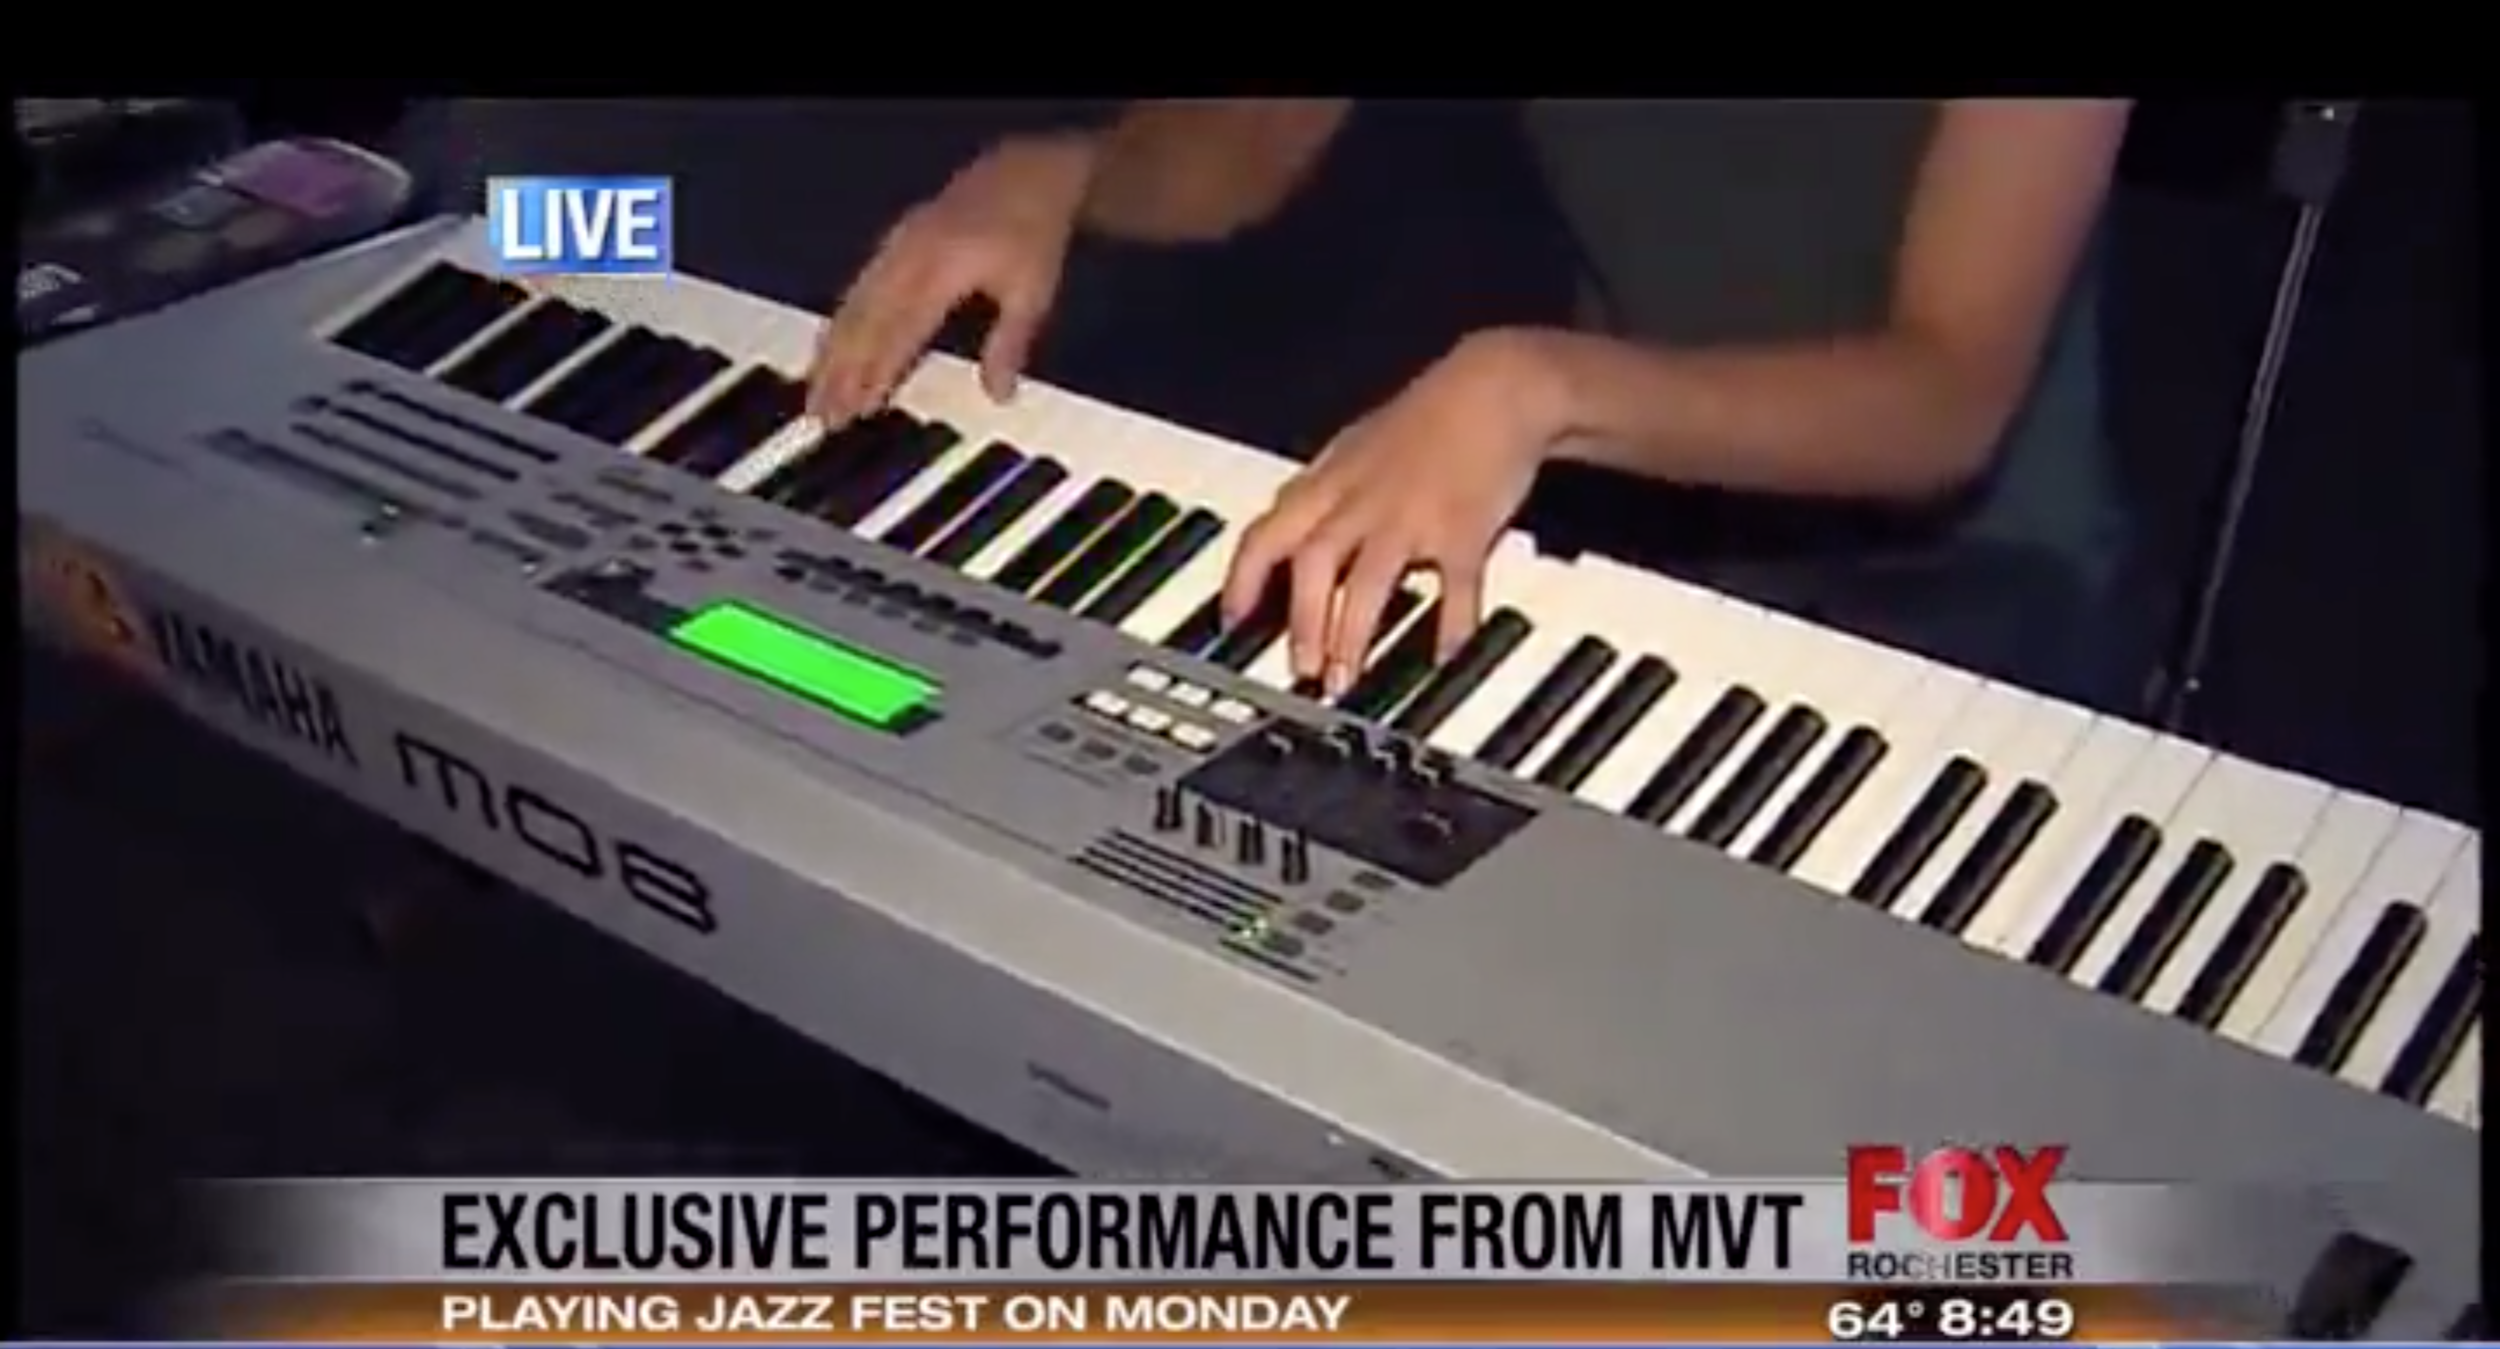 MVT performs live on Fox Rochester. (click for video)